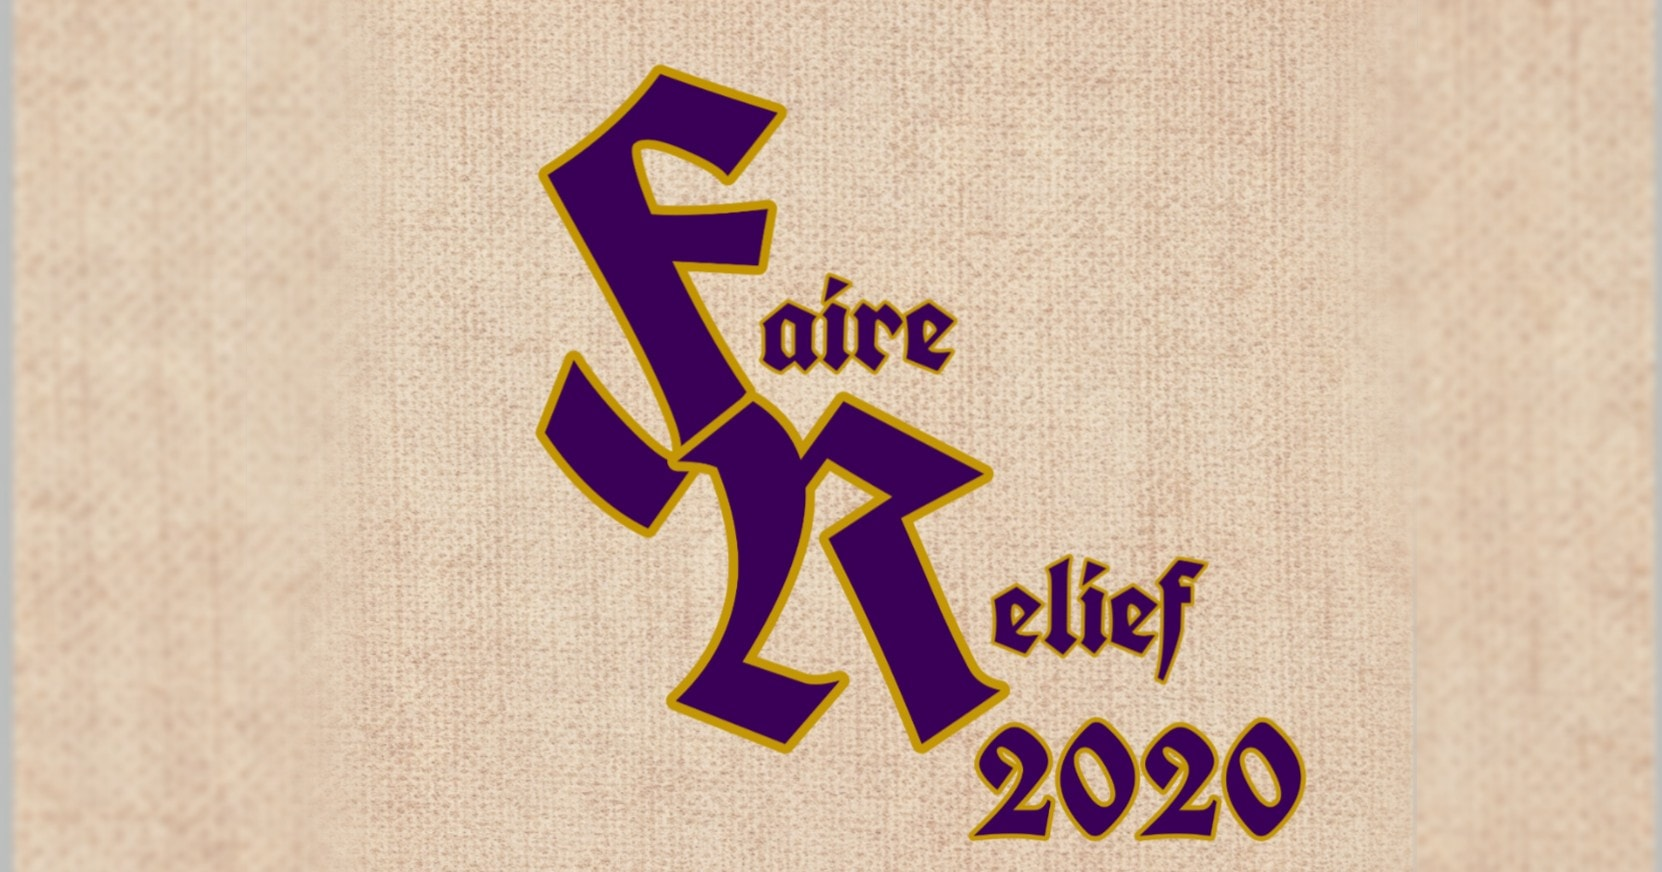 Travel Virtually to Other Fairs - Faire Relief 2020